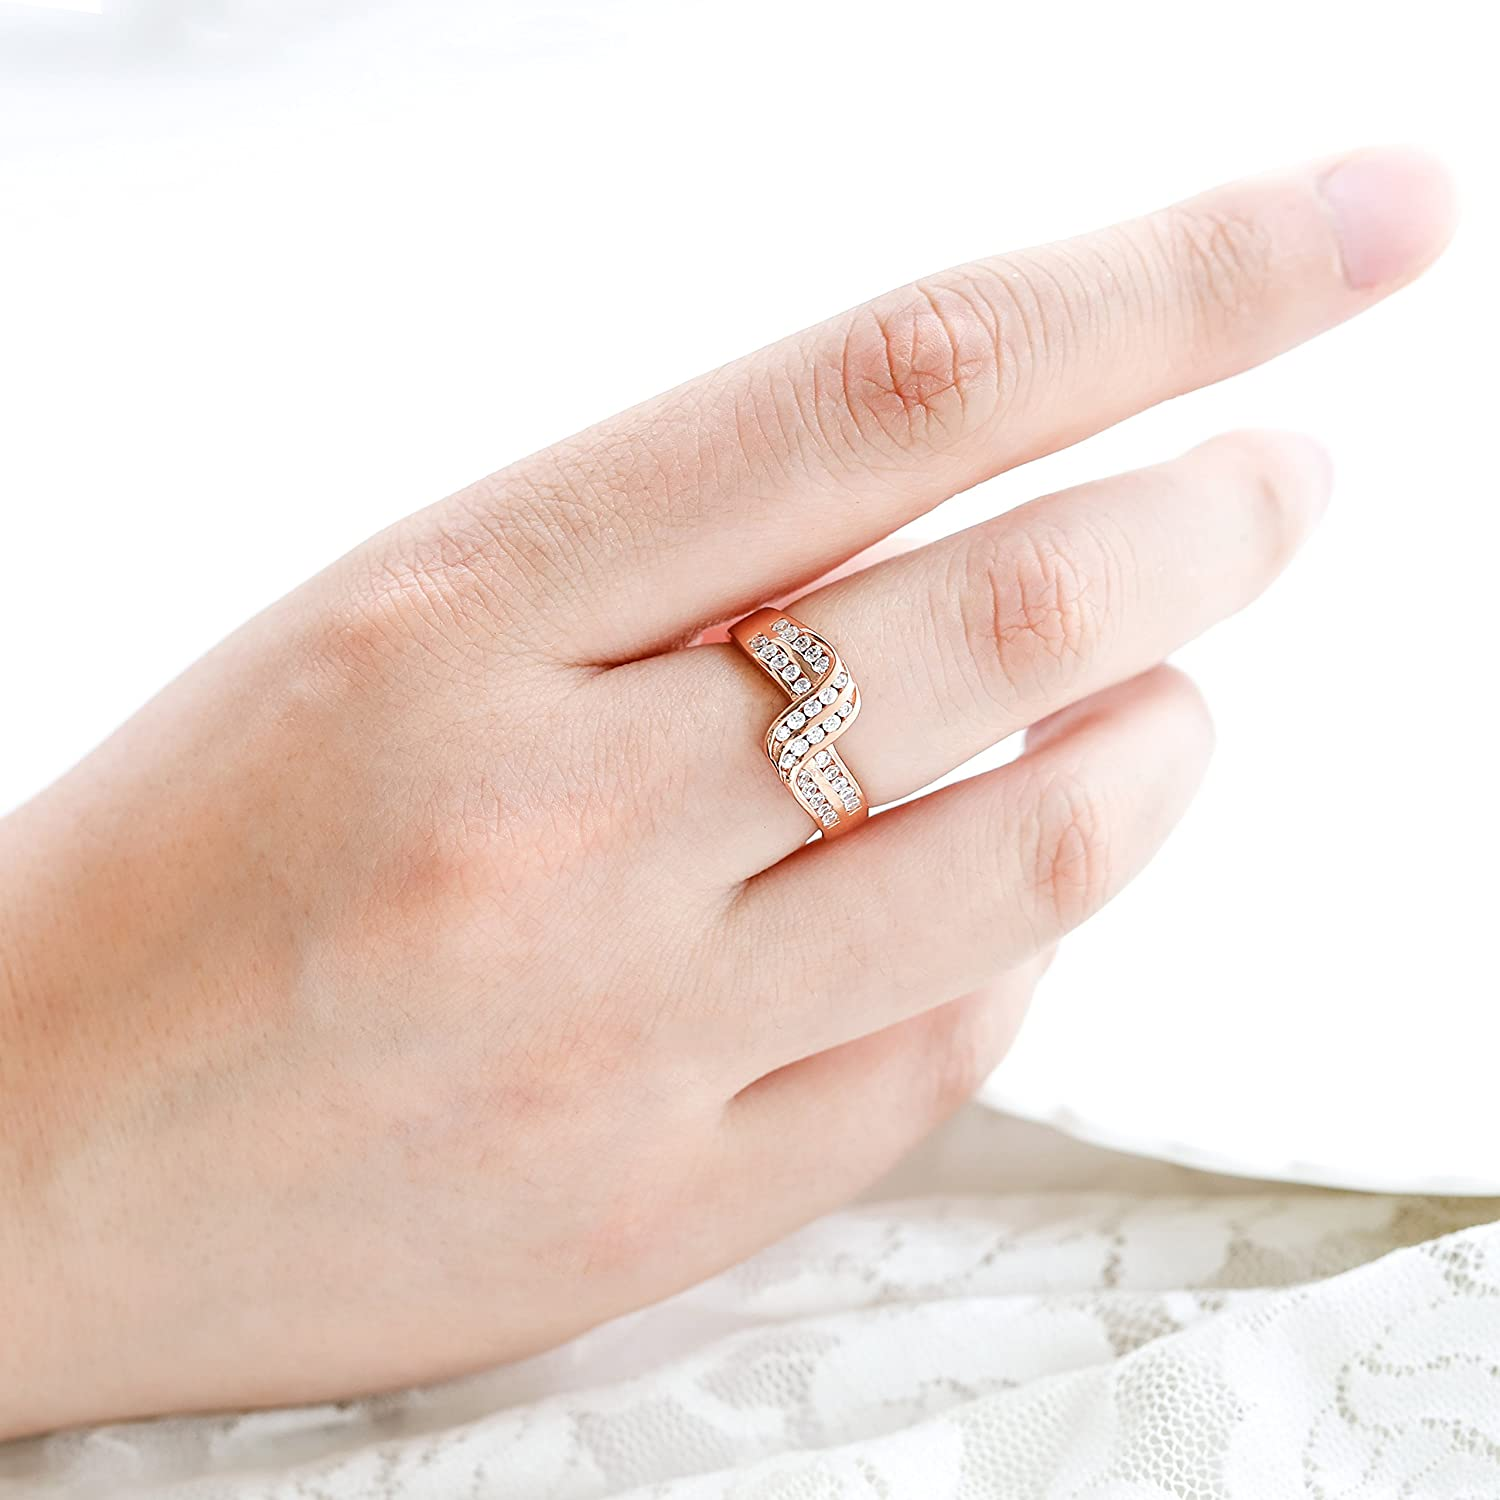 7f532ba87 Amazon.com: Barogirl Twist Ring Engagement Ring for Women Women's Rings for  Lovers YR919 (7, Rose-gold): Beauty